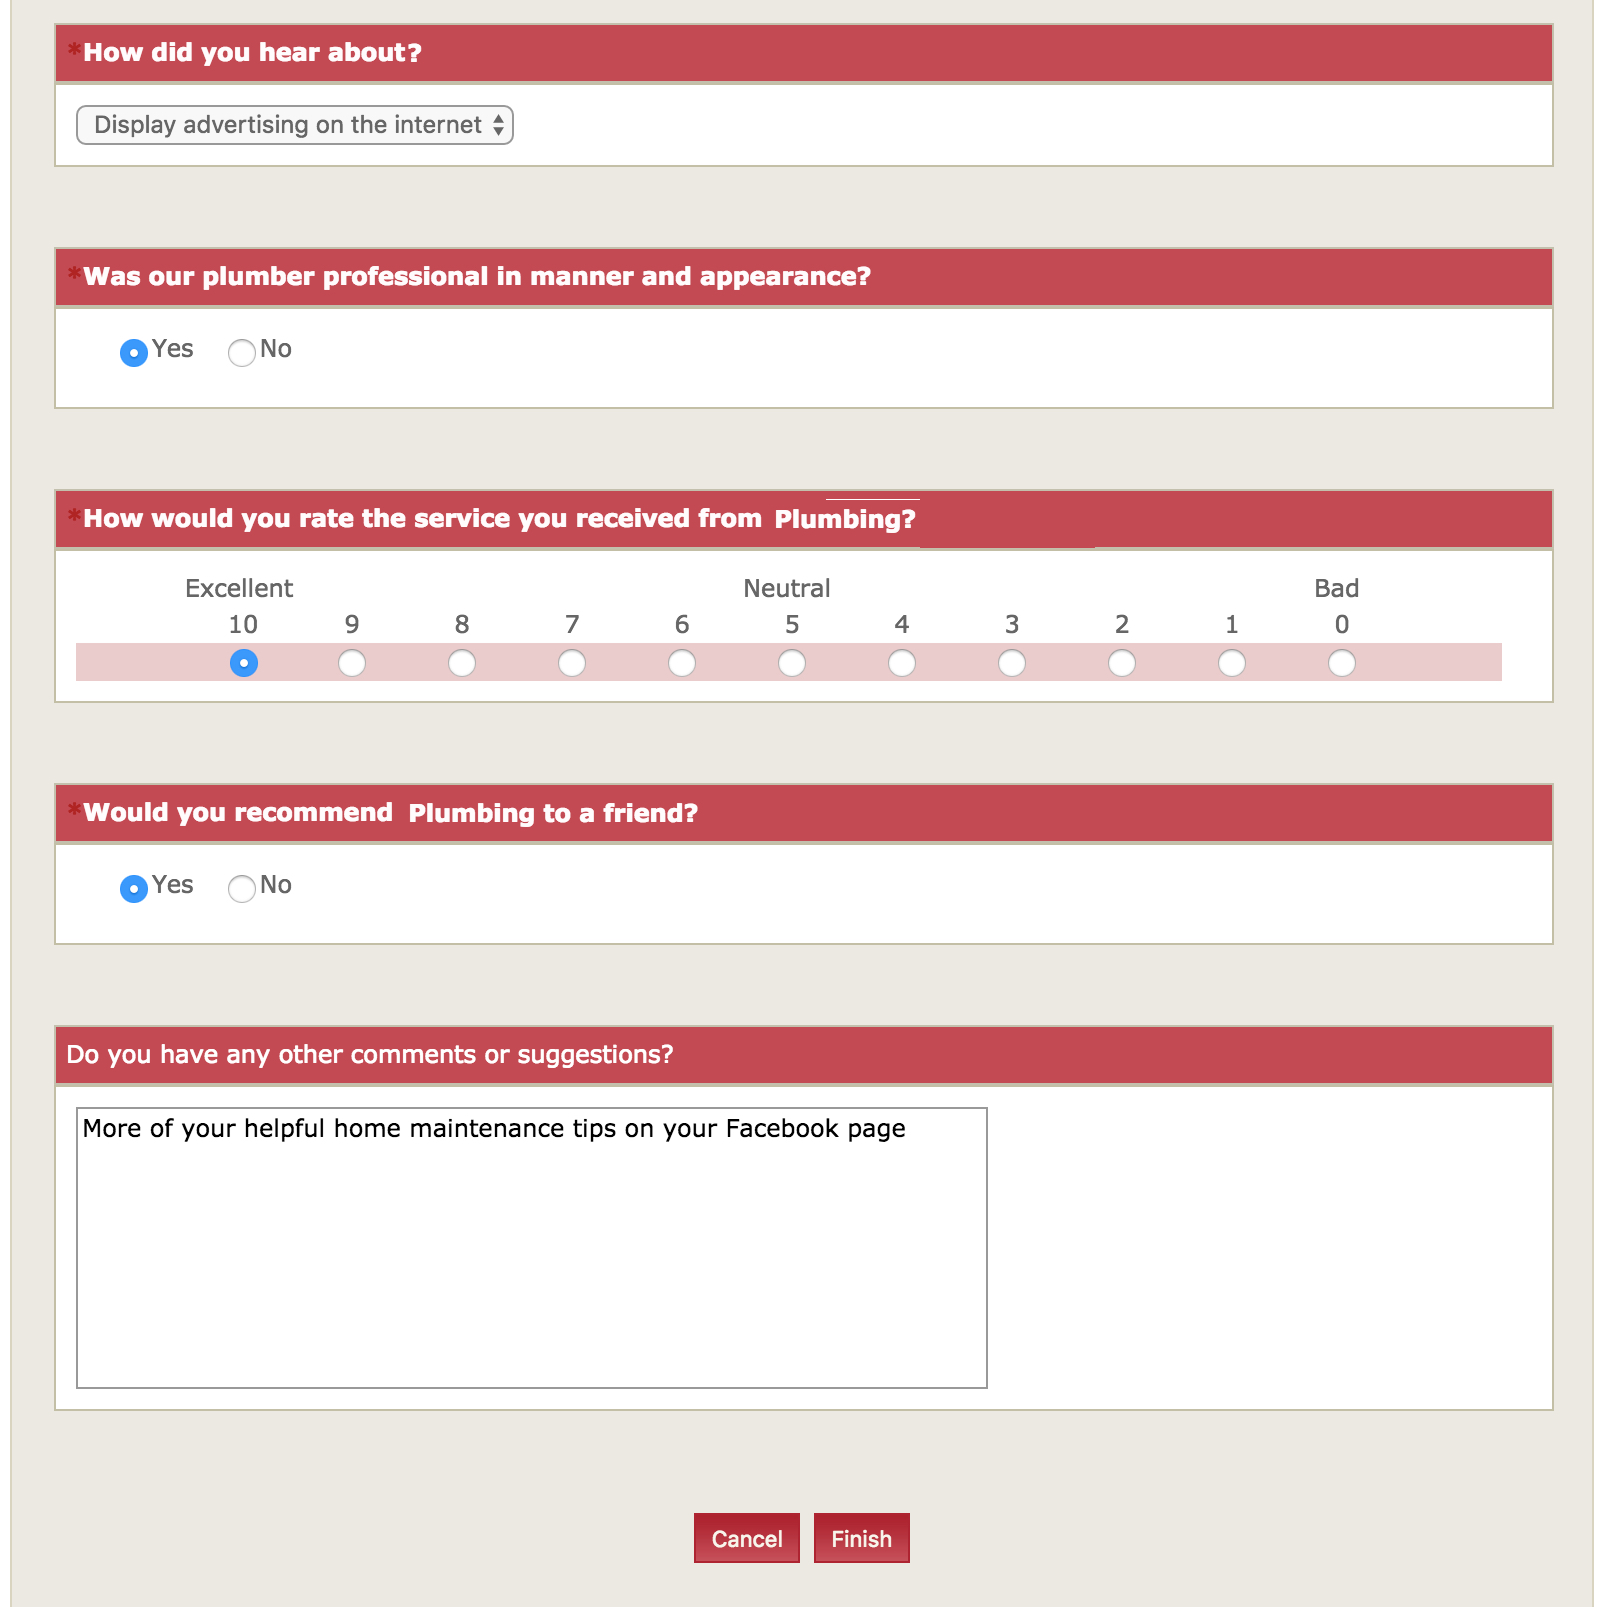 Survey example without company name